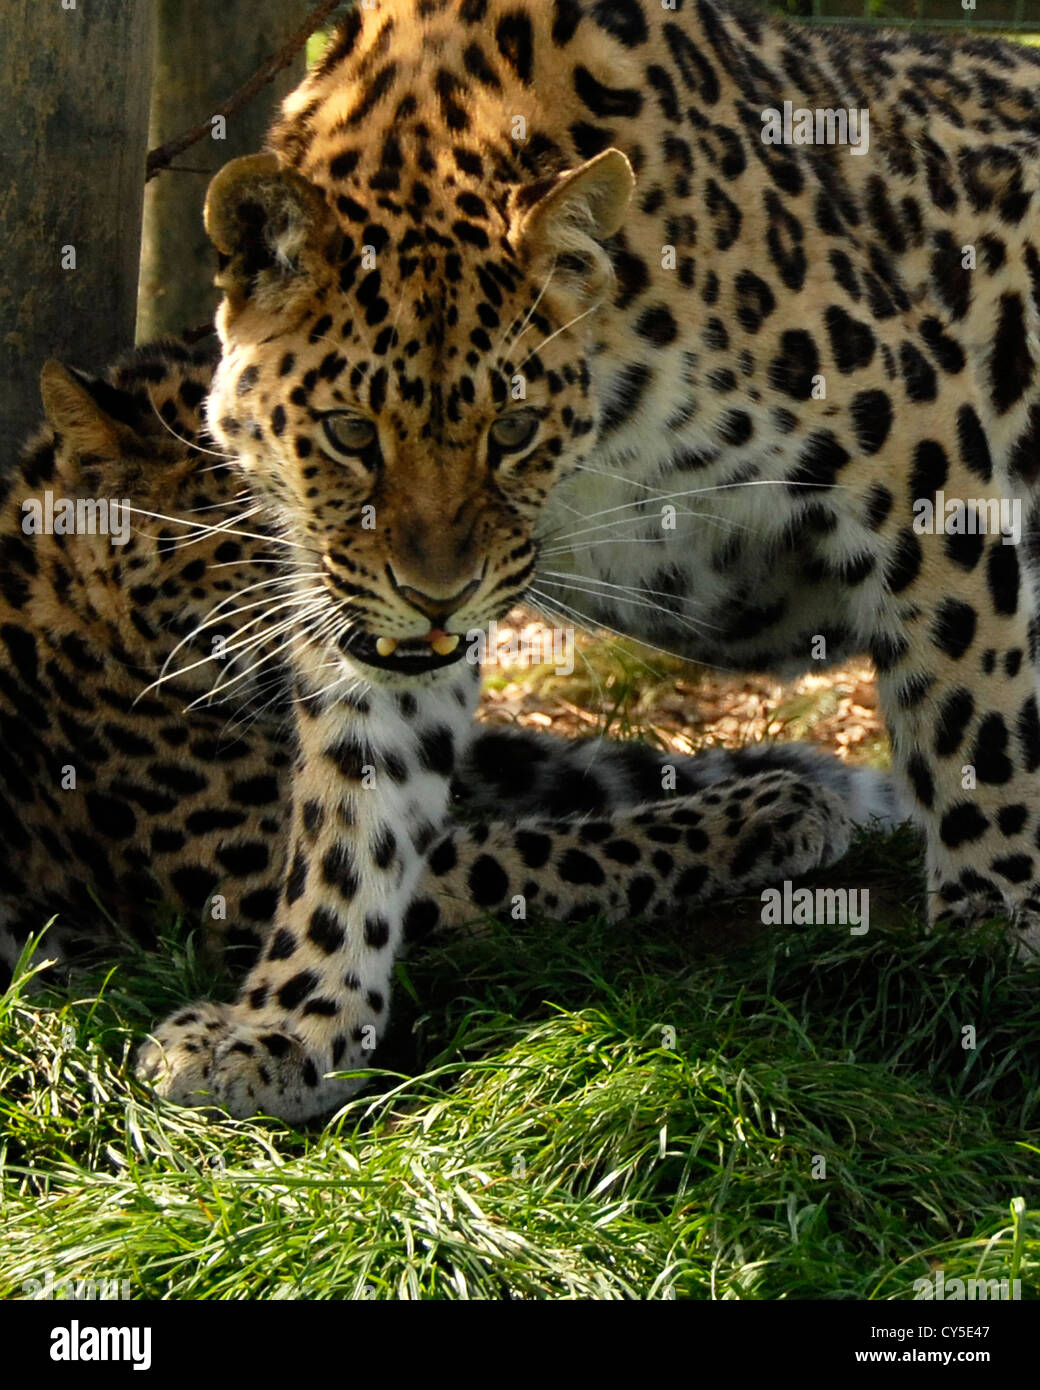 Two Amur Leopards, foreground leopard is growling - Stock Image